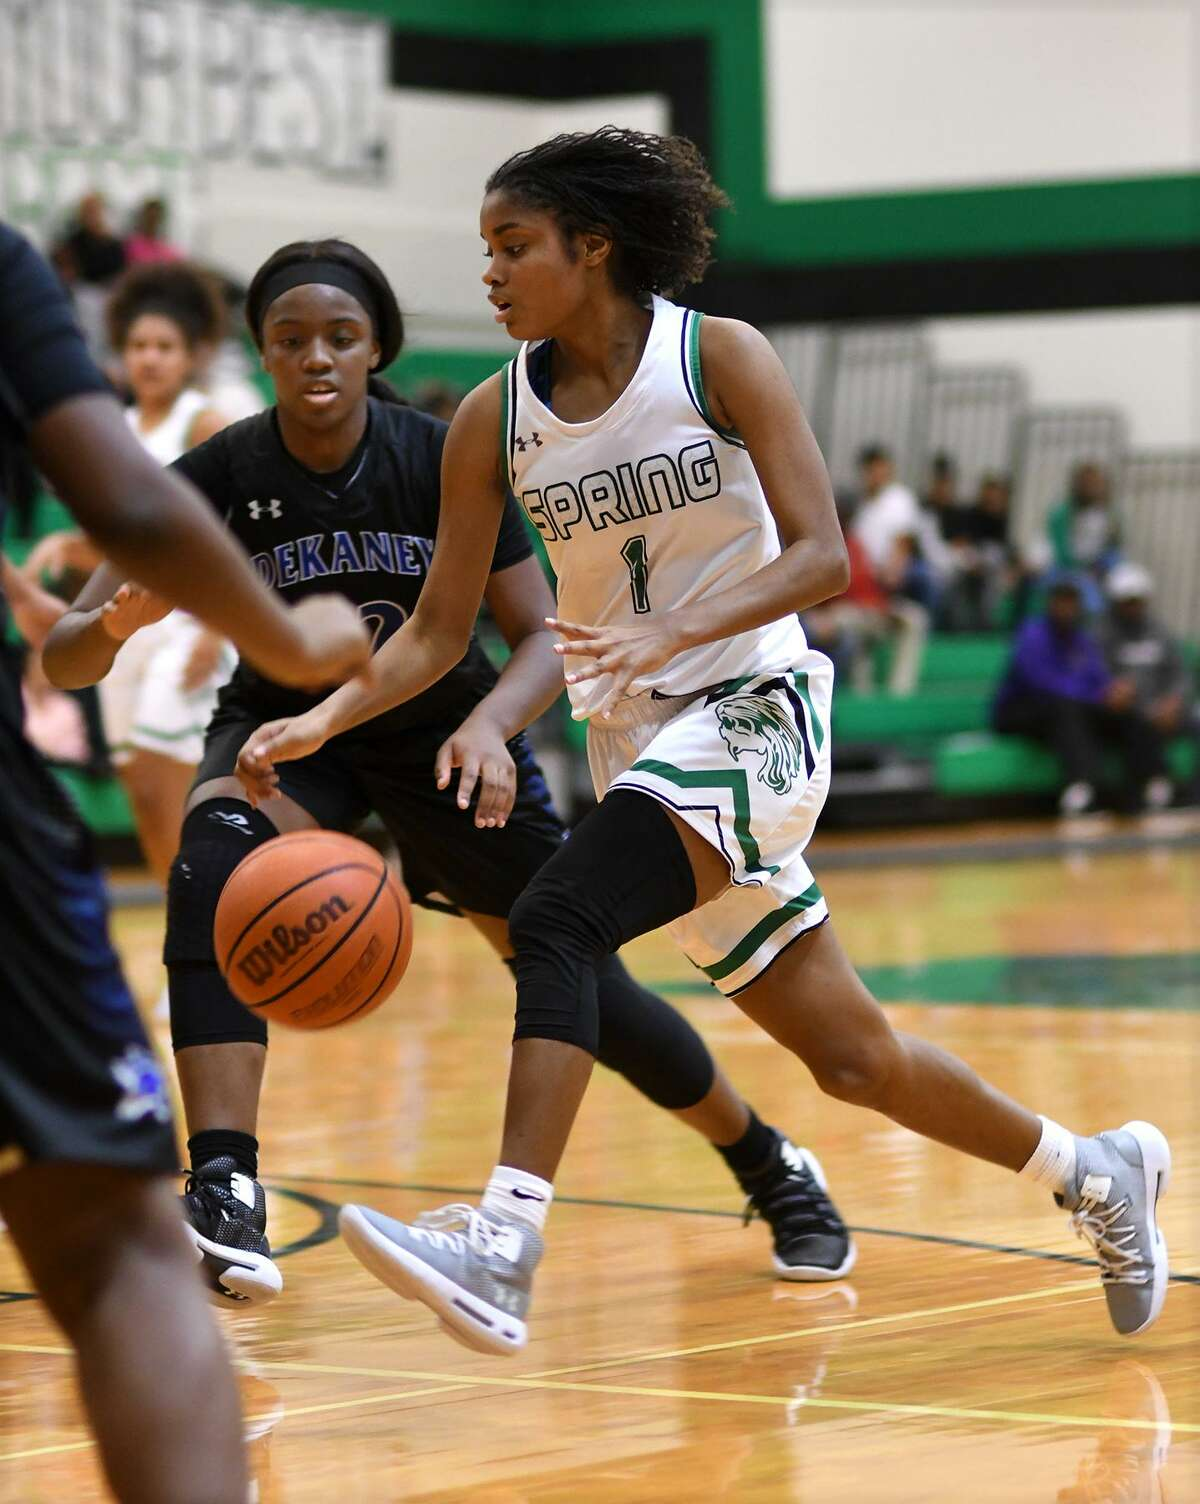 Spring senior guard Kaitlyn Davis (1) drives with the ball against Dekaney senior guard Amanda Ferry, left, during their District 16-6A matchup at Spring High School on Jan. 4, 2019.